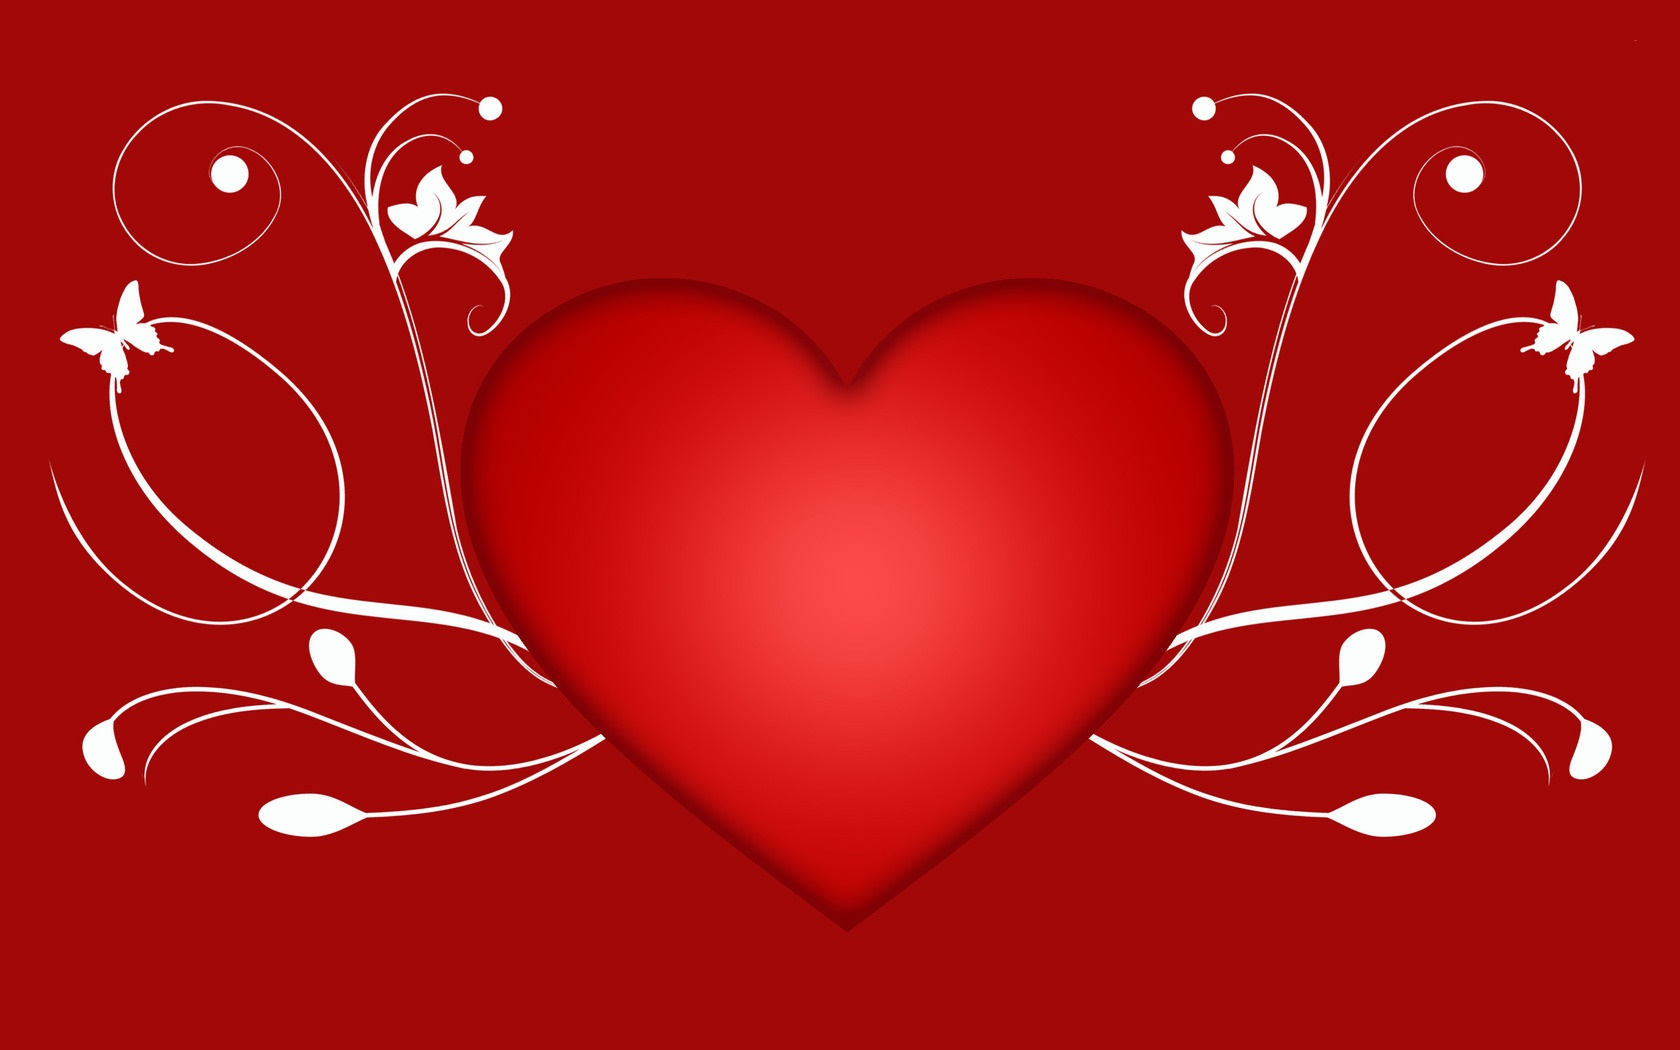 valentines day backgrounds wallpapers - photo #13